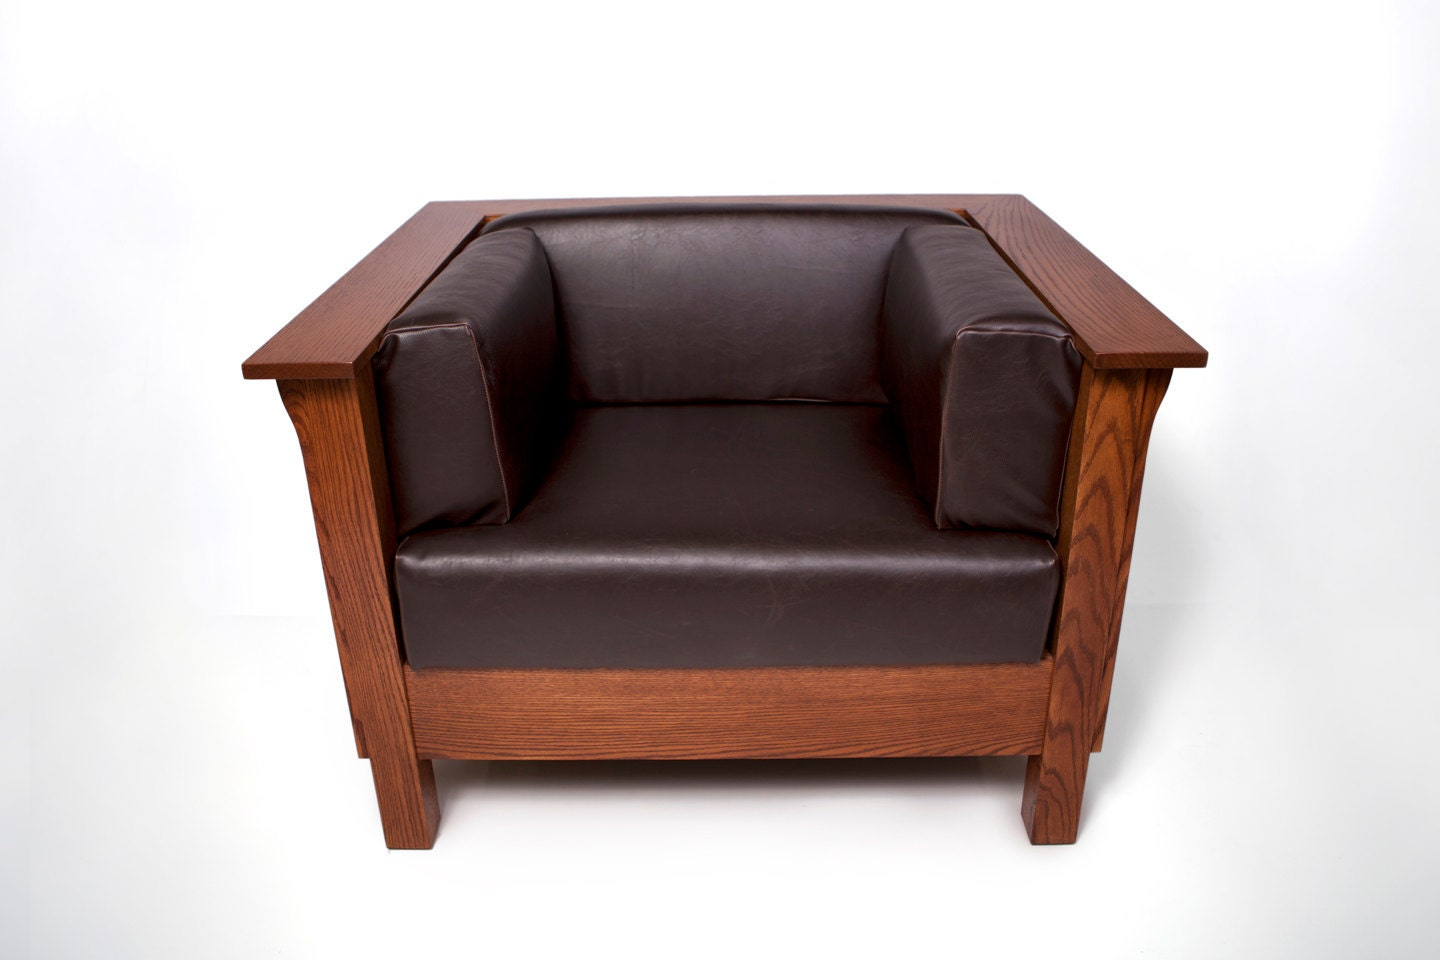 Mission chair leather -  Zoom